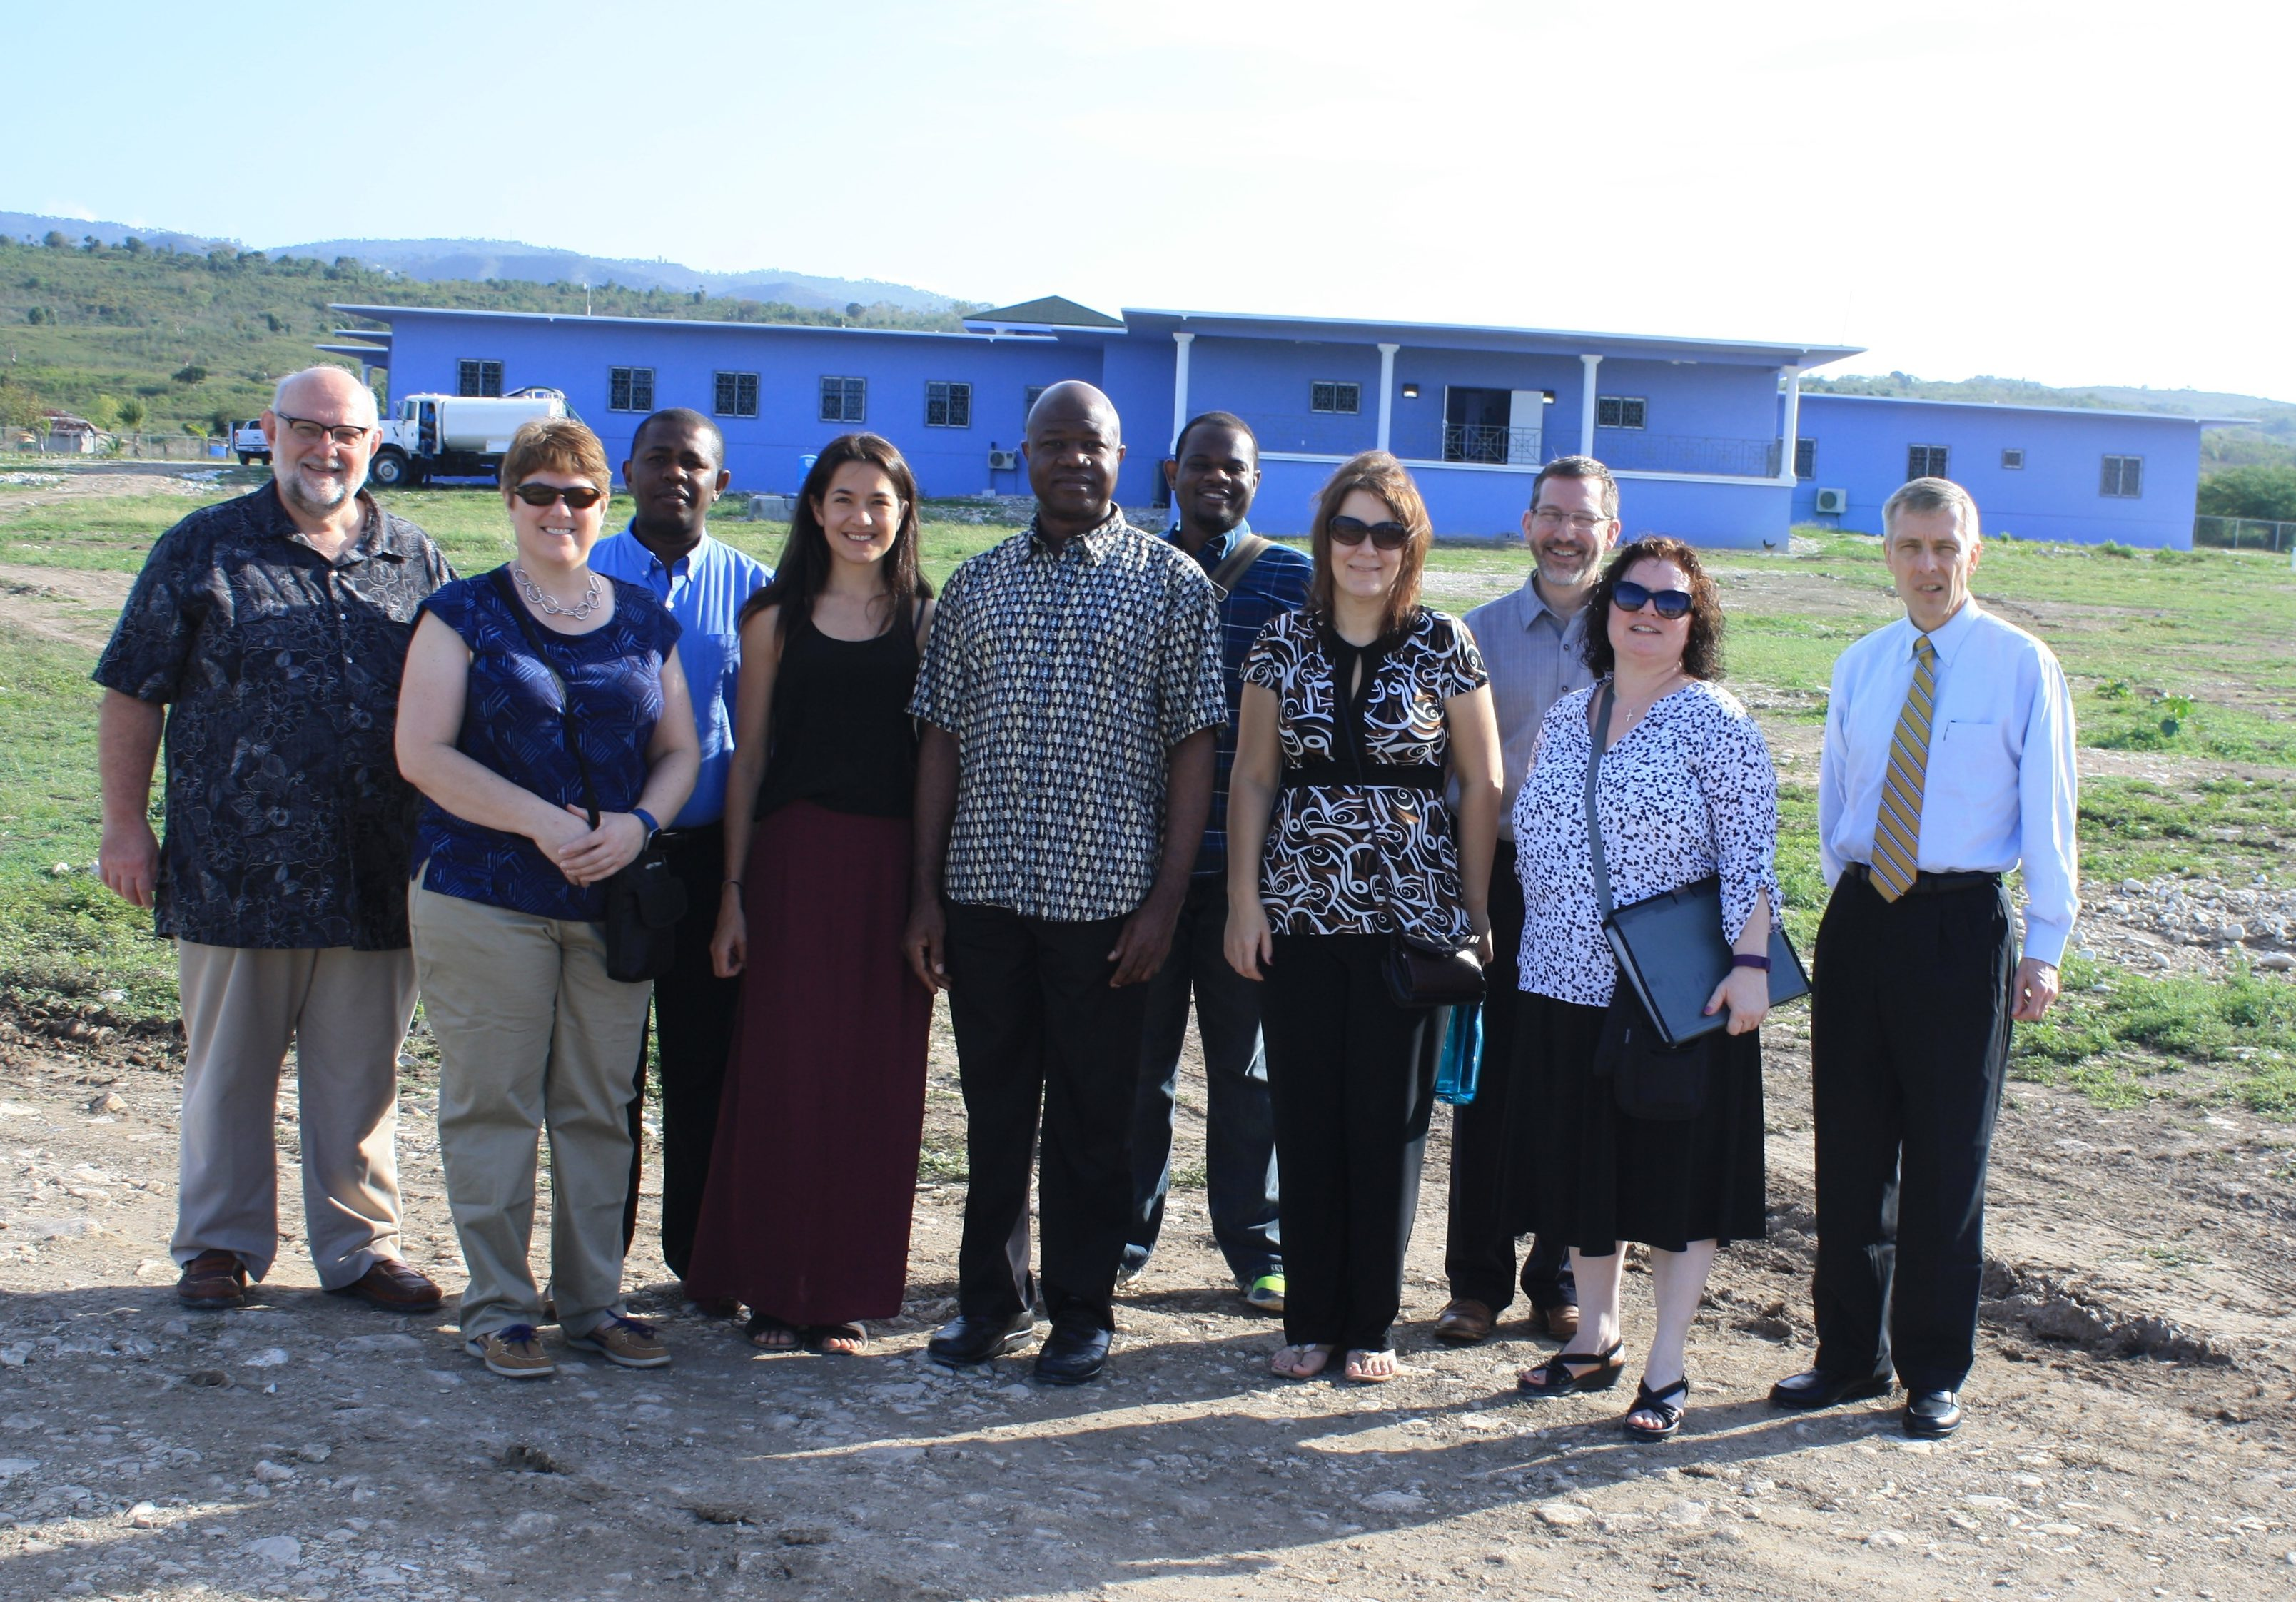 Mercy health mission team outside the hospital in Haiti.